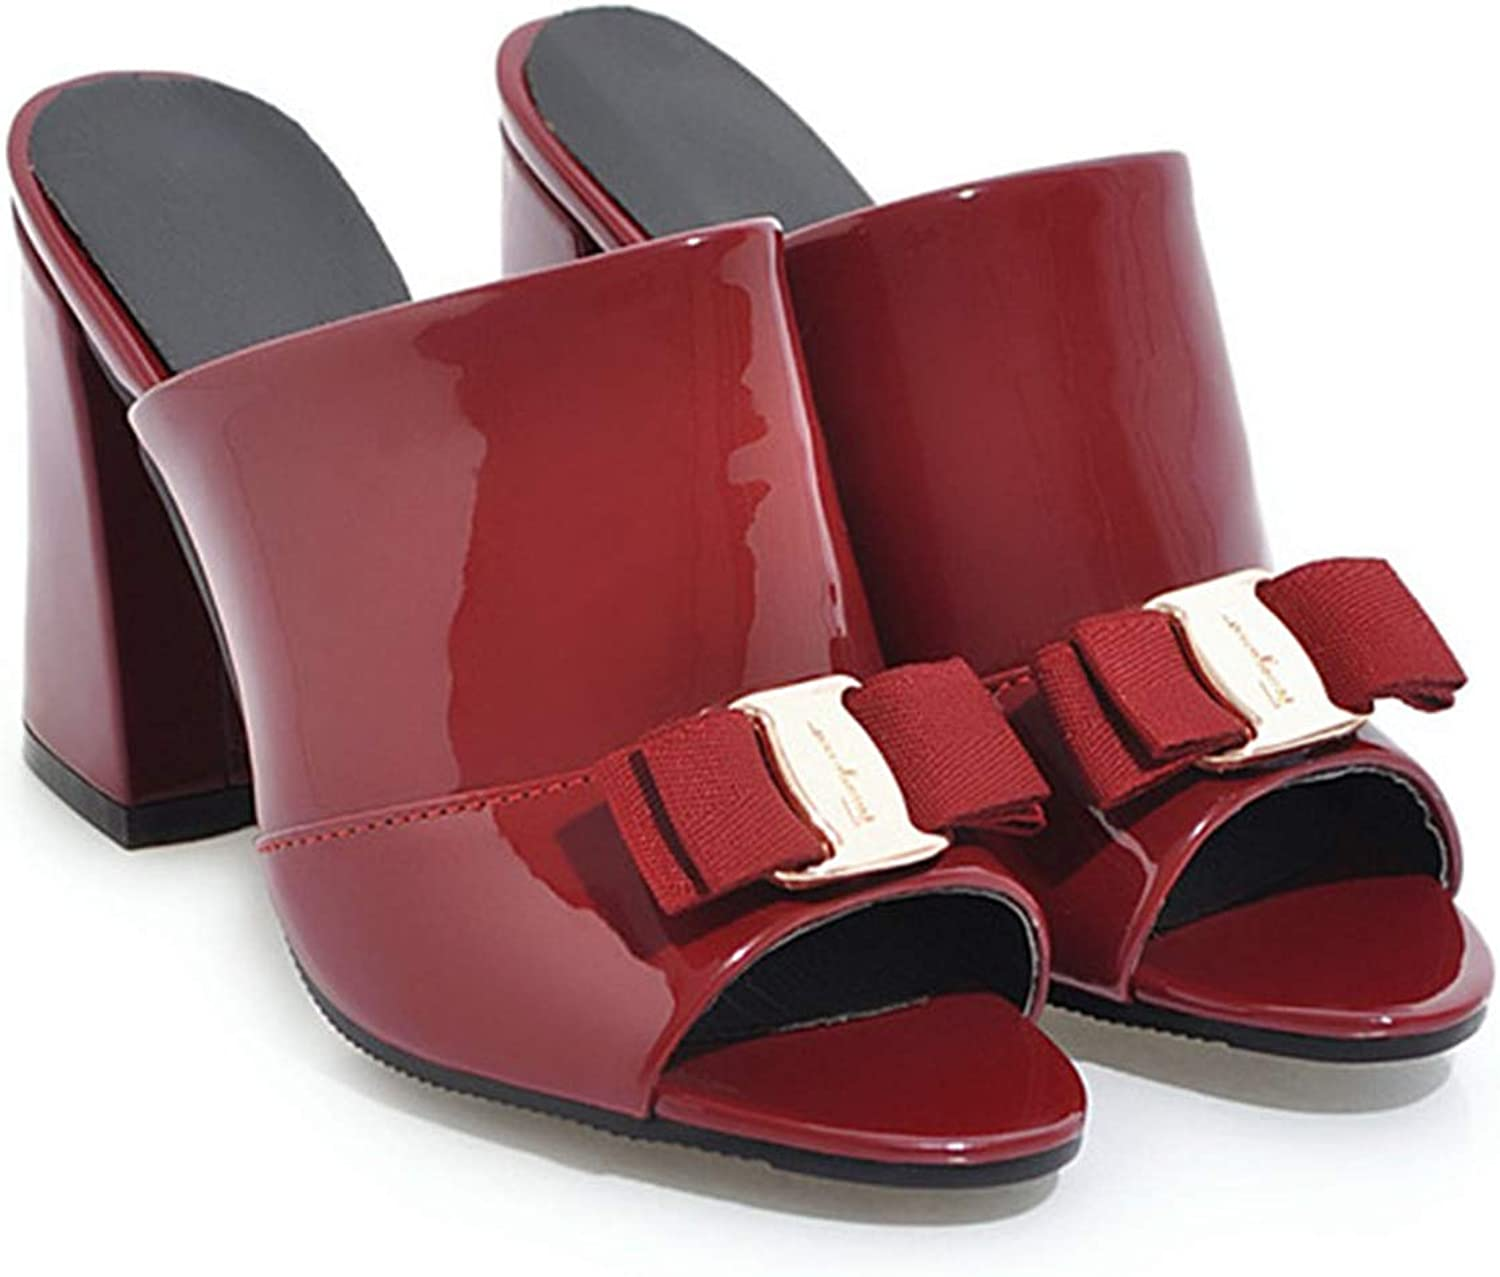 Tellusa Women shoes Summer High Heels Peep Toe Ladies Party shoes Bow Block Heel Female Slipper Outdoor Red Black Big Size 34-43